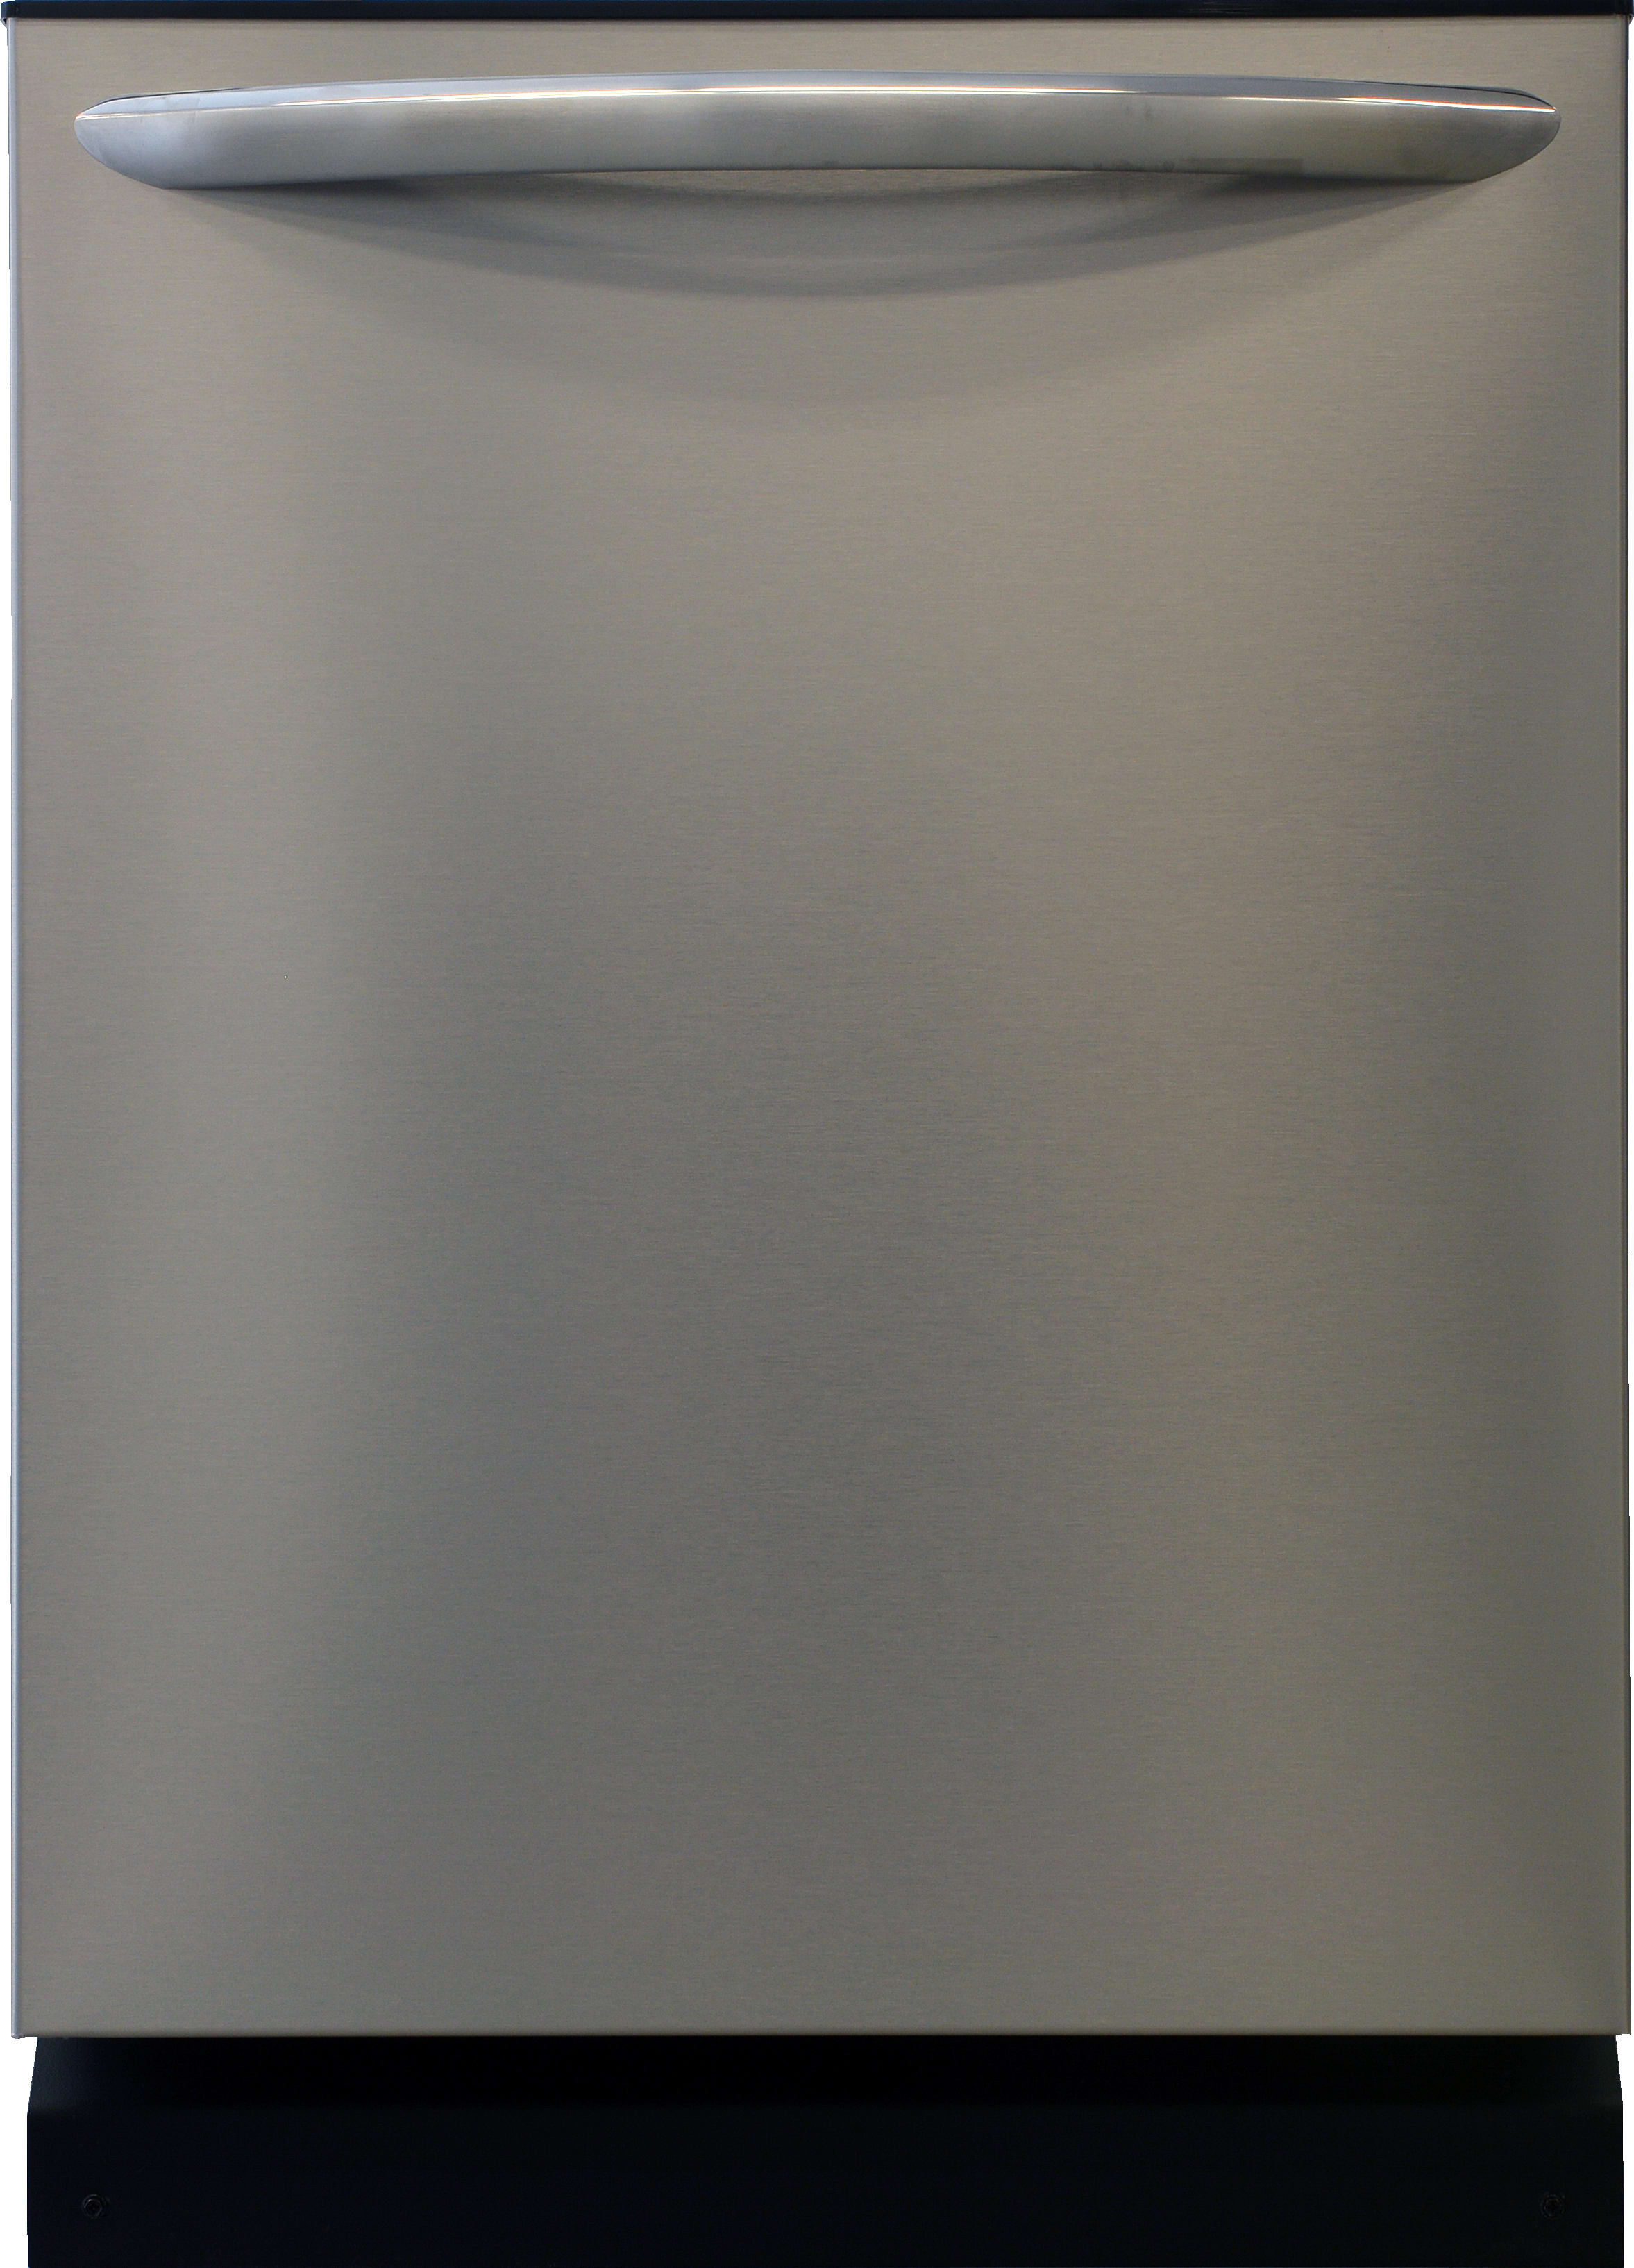 Frigidaire Gallery FGID2466QF stainless steel front